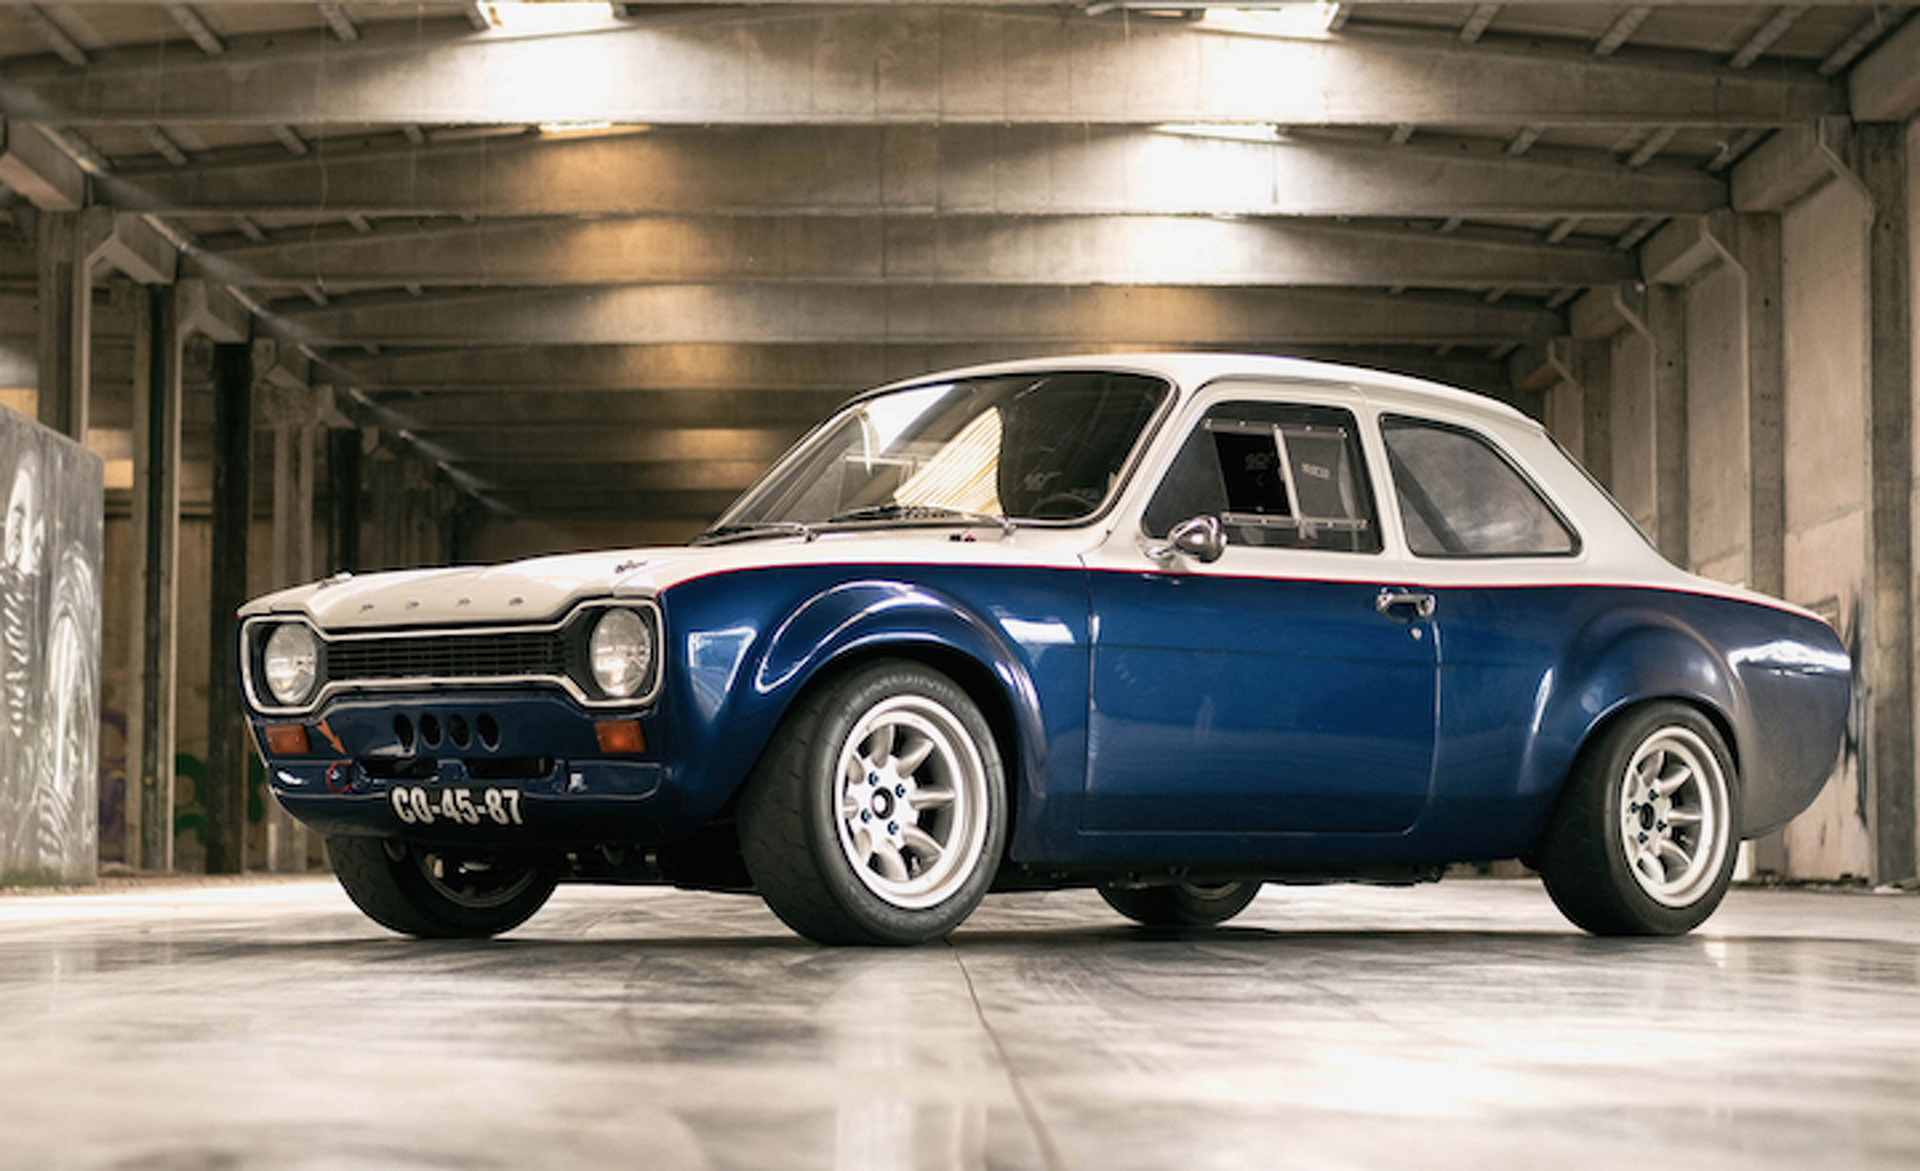 1974 ford escort mk1 restored to its former glory promptly does donuts